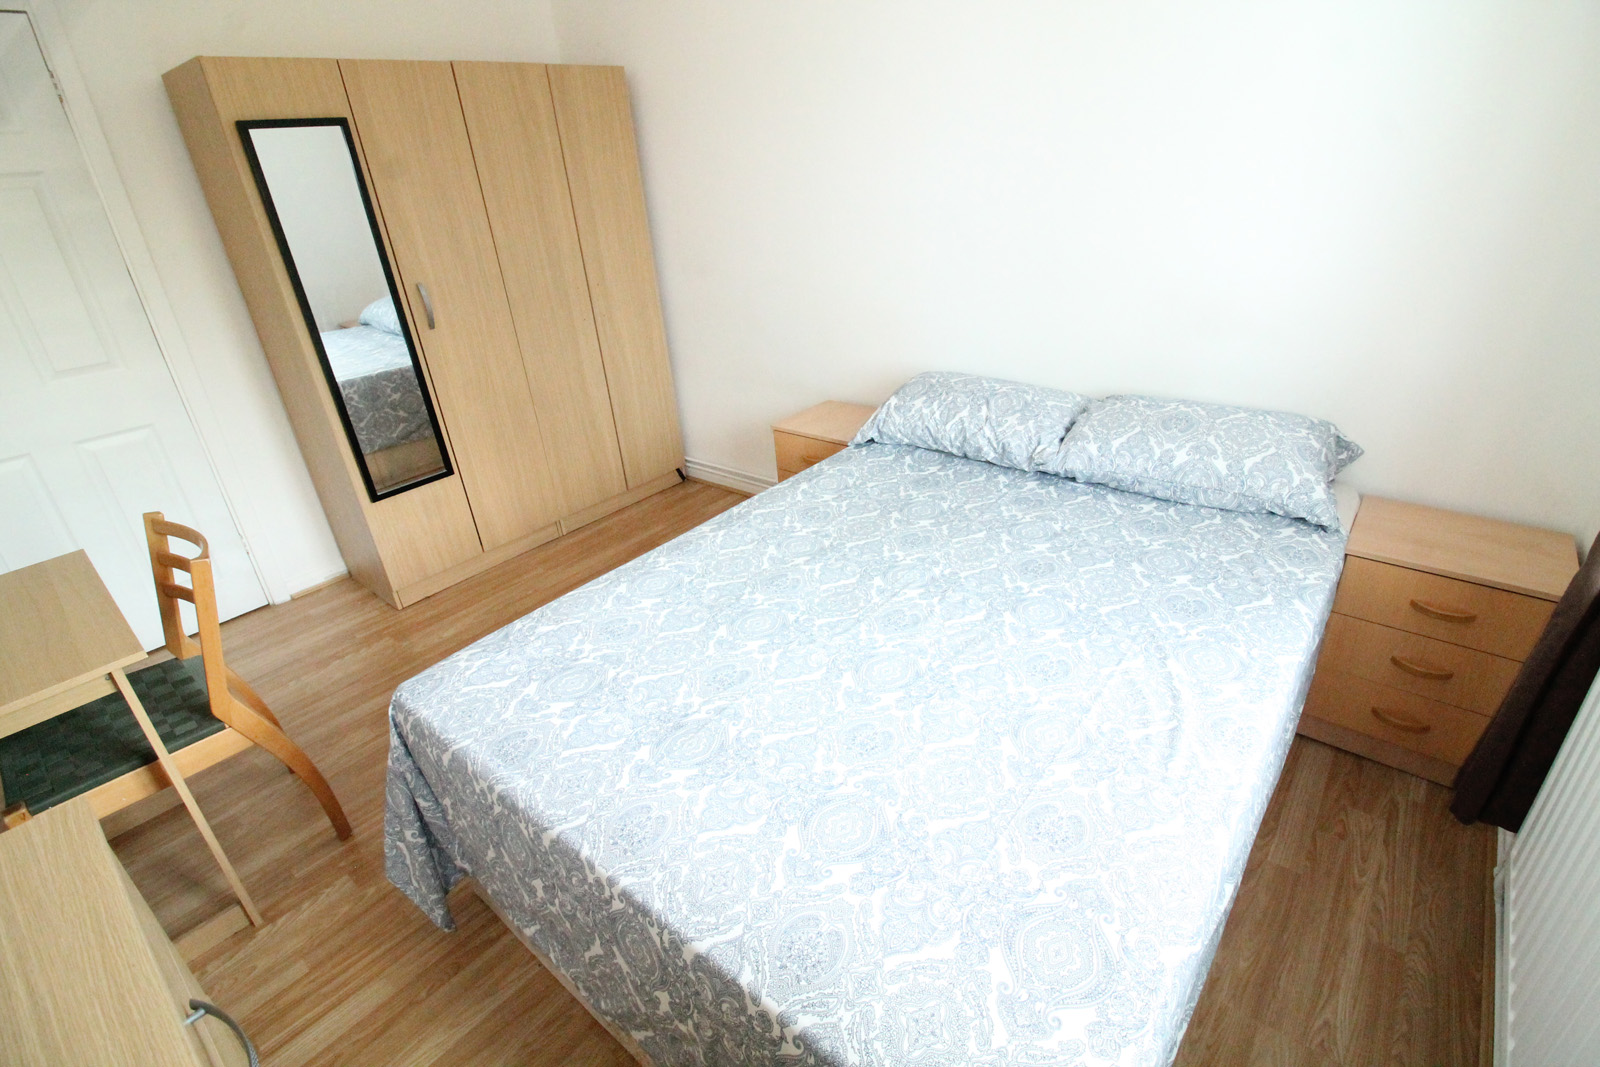 Fantastic two bedroom flat-share image